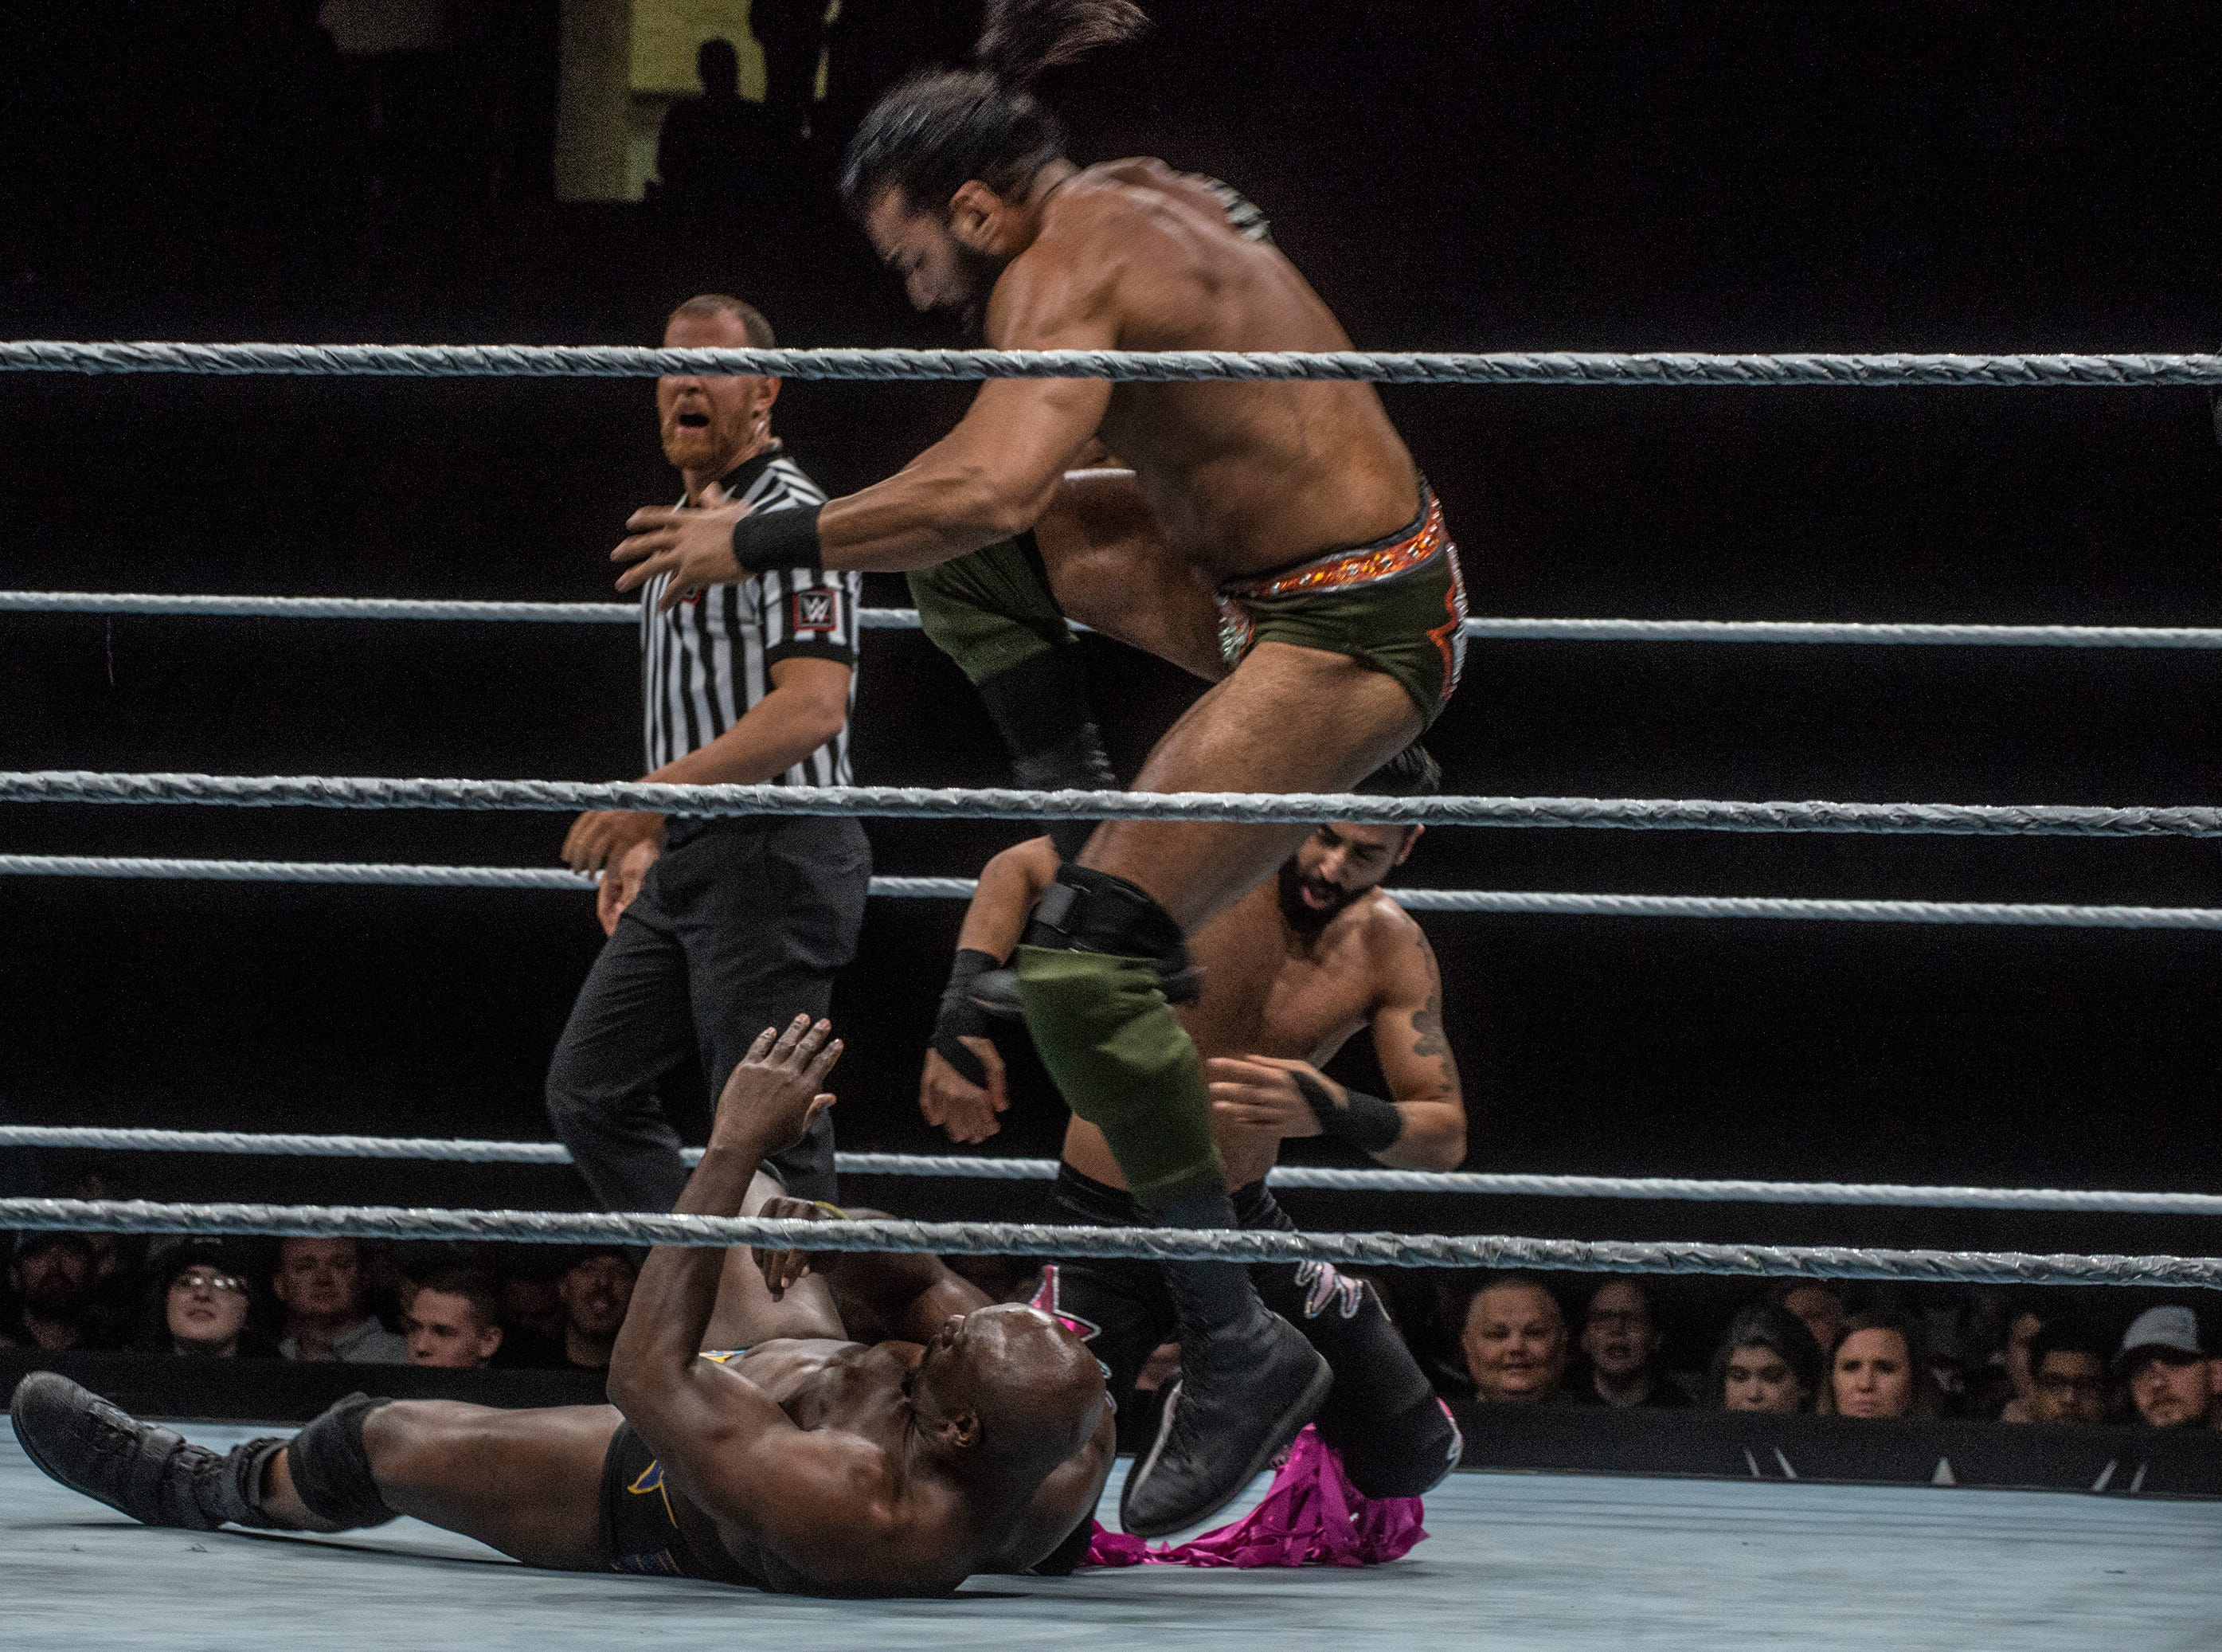 Jinder Mahal stomps on Titus OÕNeil. WWE Live Road to Wrestlemania came to Garrett Coliseum in Montgomery on Sunday, Feb. 24, 2019.